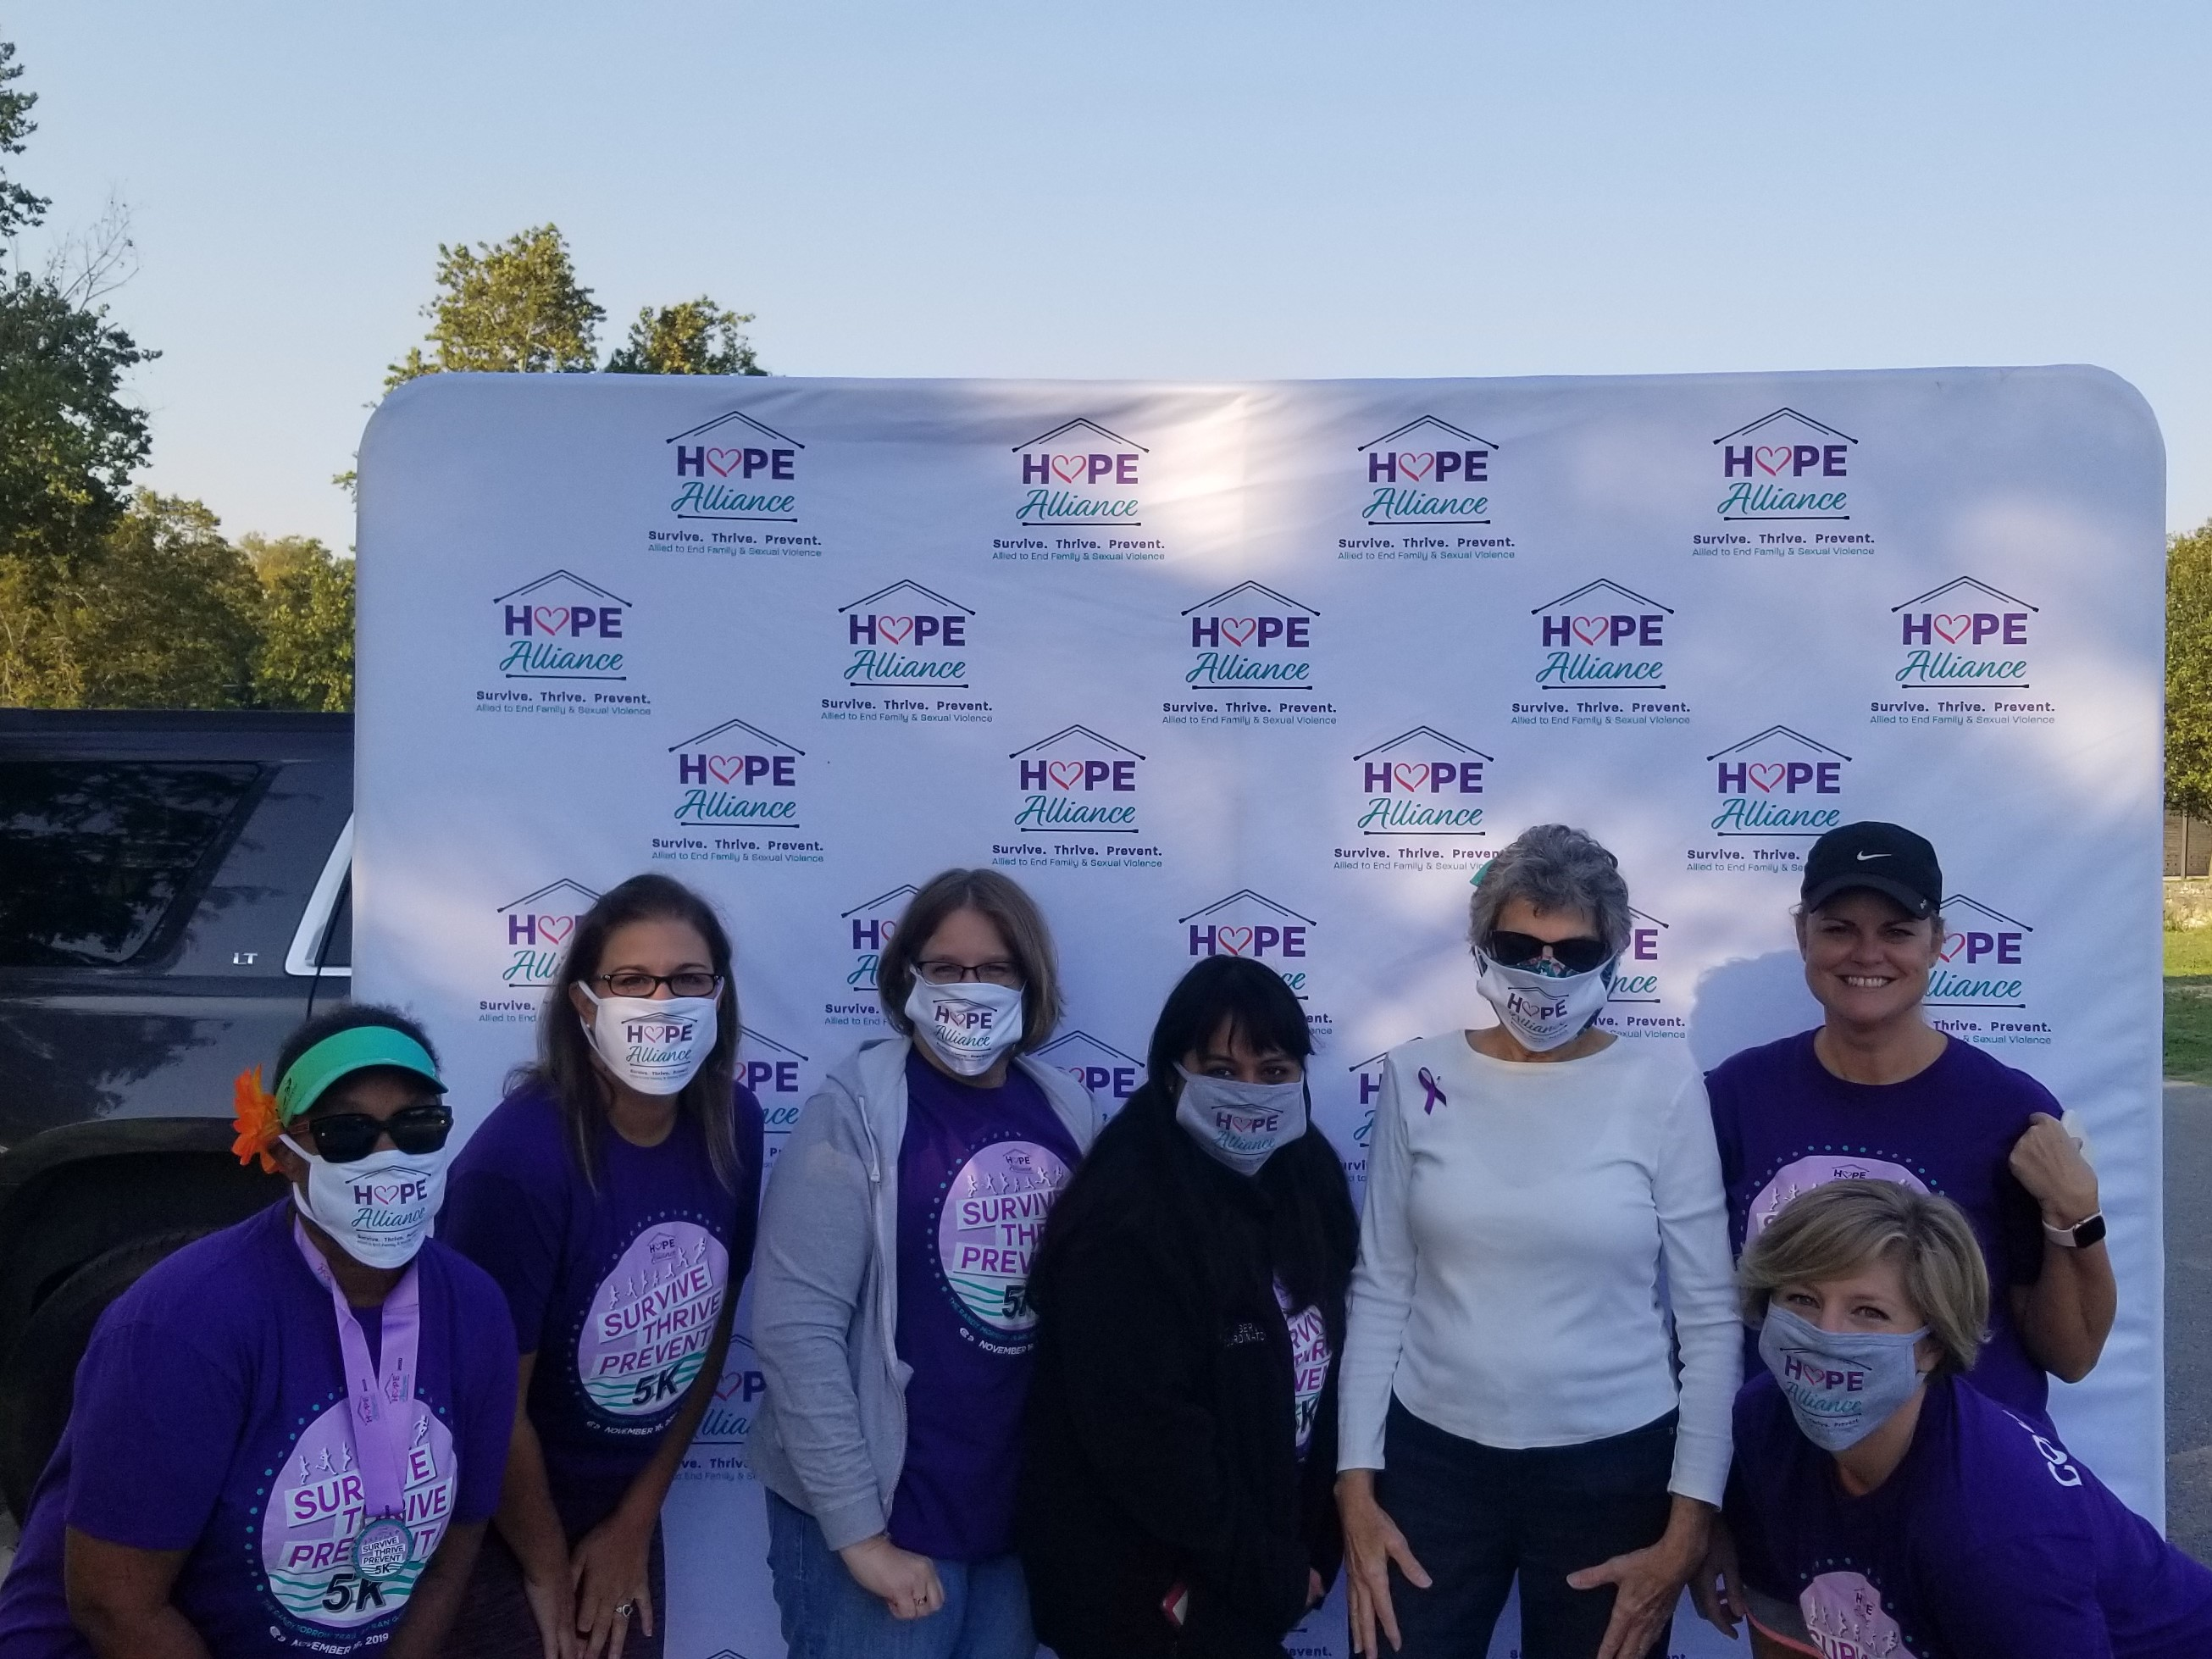 Volunteer committee members for the Hope Alliance Virtual 5K Race pose with Commissioner Terry Cook at San Gabriel Park in Georgetown. They are from left, Patricia Fowler, Natalie McKinnon, Tracy Lyke, Priscilla Moreno, Cook, Lesa Cantrell and Jamie Felicia (kneeling).